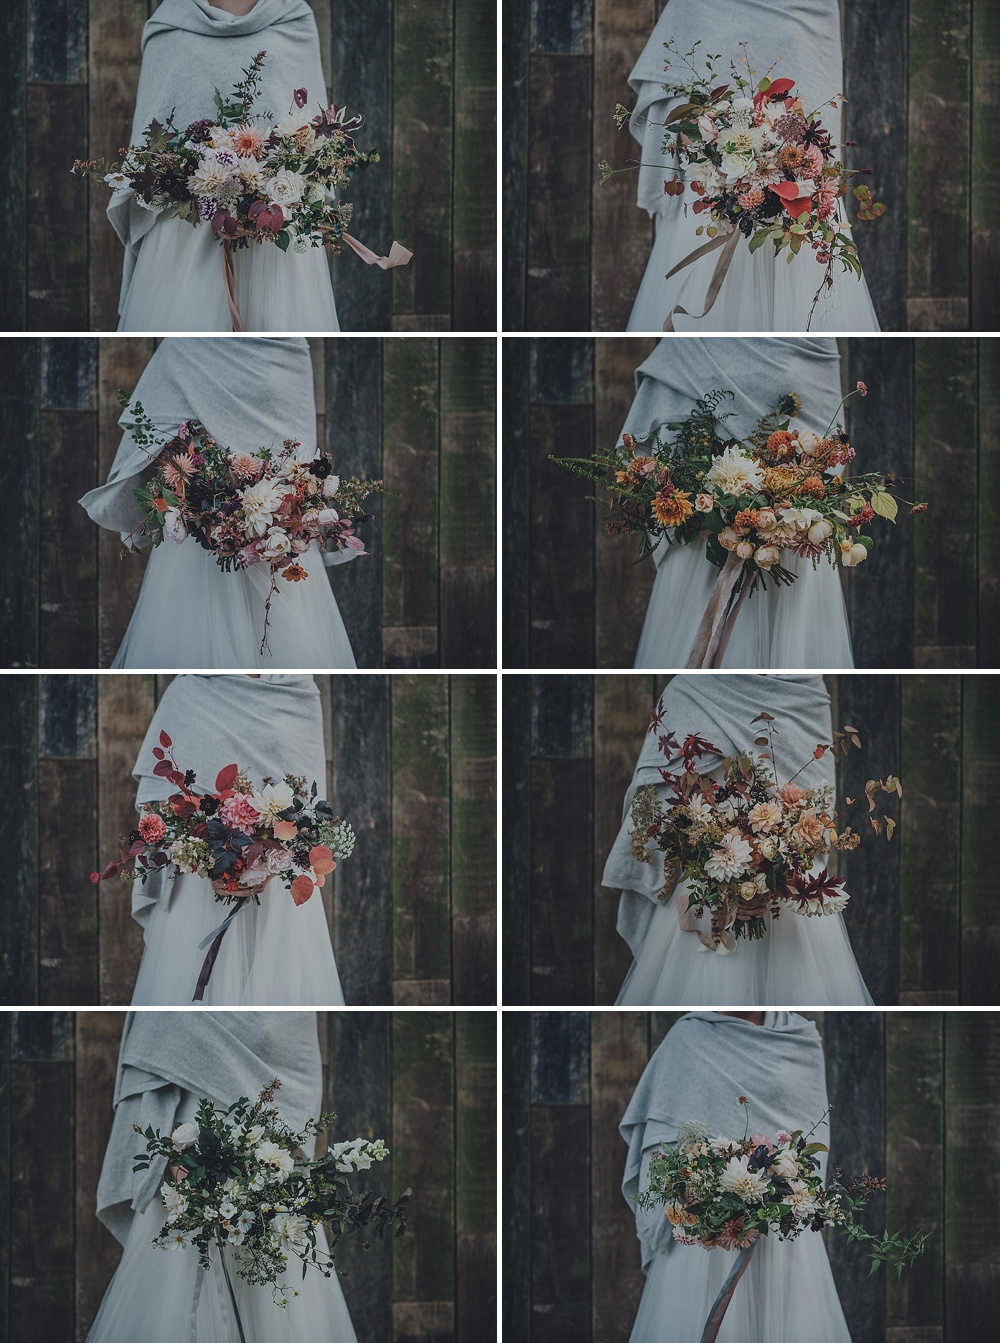 Wedding Bouquets For Autumn // Wedding Bouquets For Fall